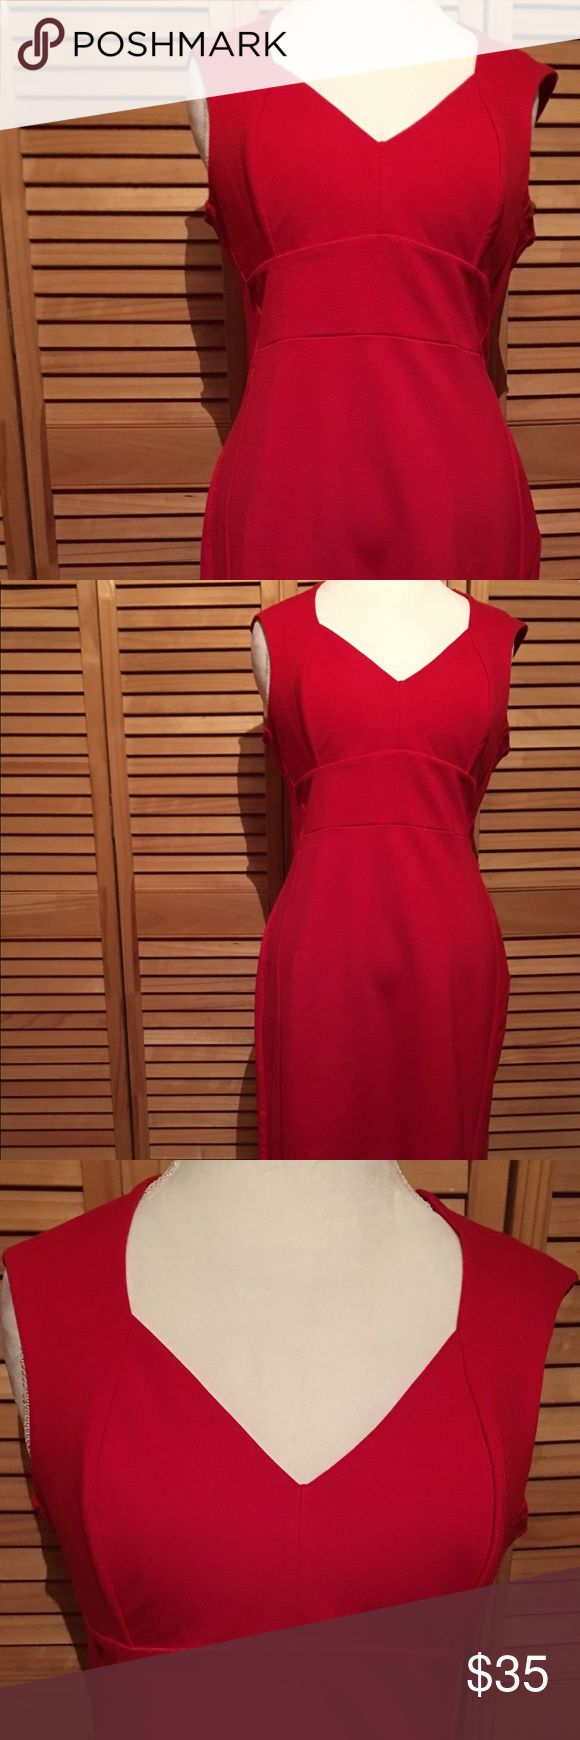 """ASOS RED DRESS ASOS red dress with back zipper, sleeveless, size 12P, new with tag, never worn. 66% viscose, 29% nylon, 5% elastase, 42"""" length from shoulder. ASOS Petite Dresses"""